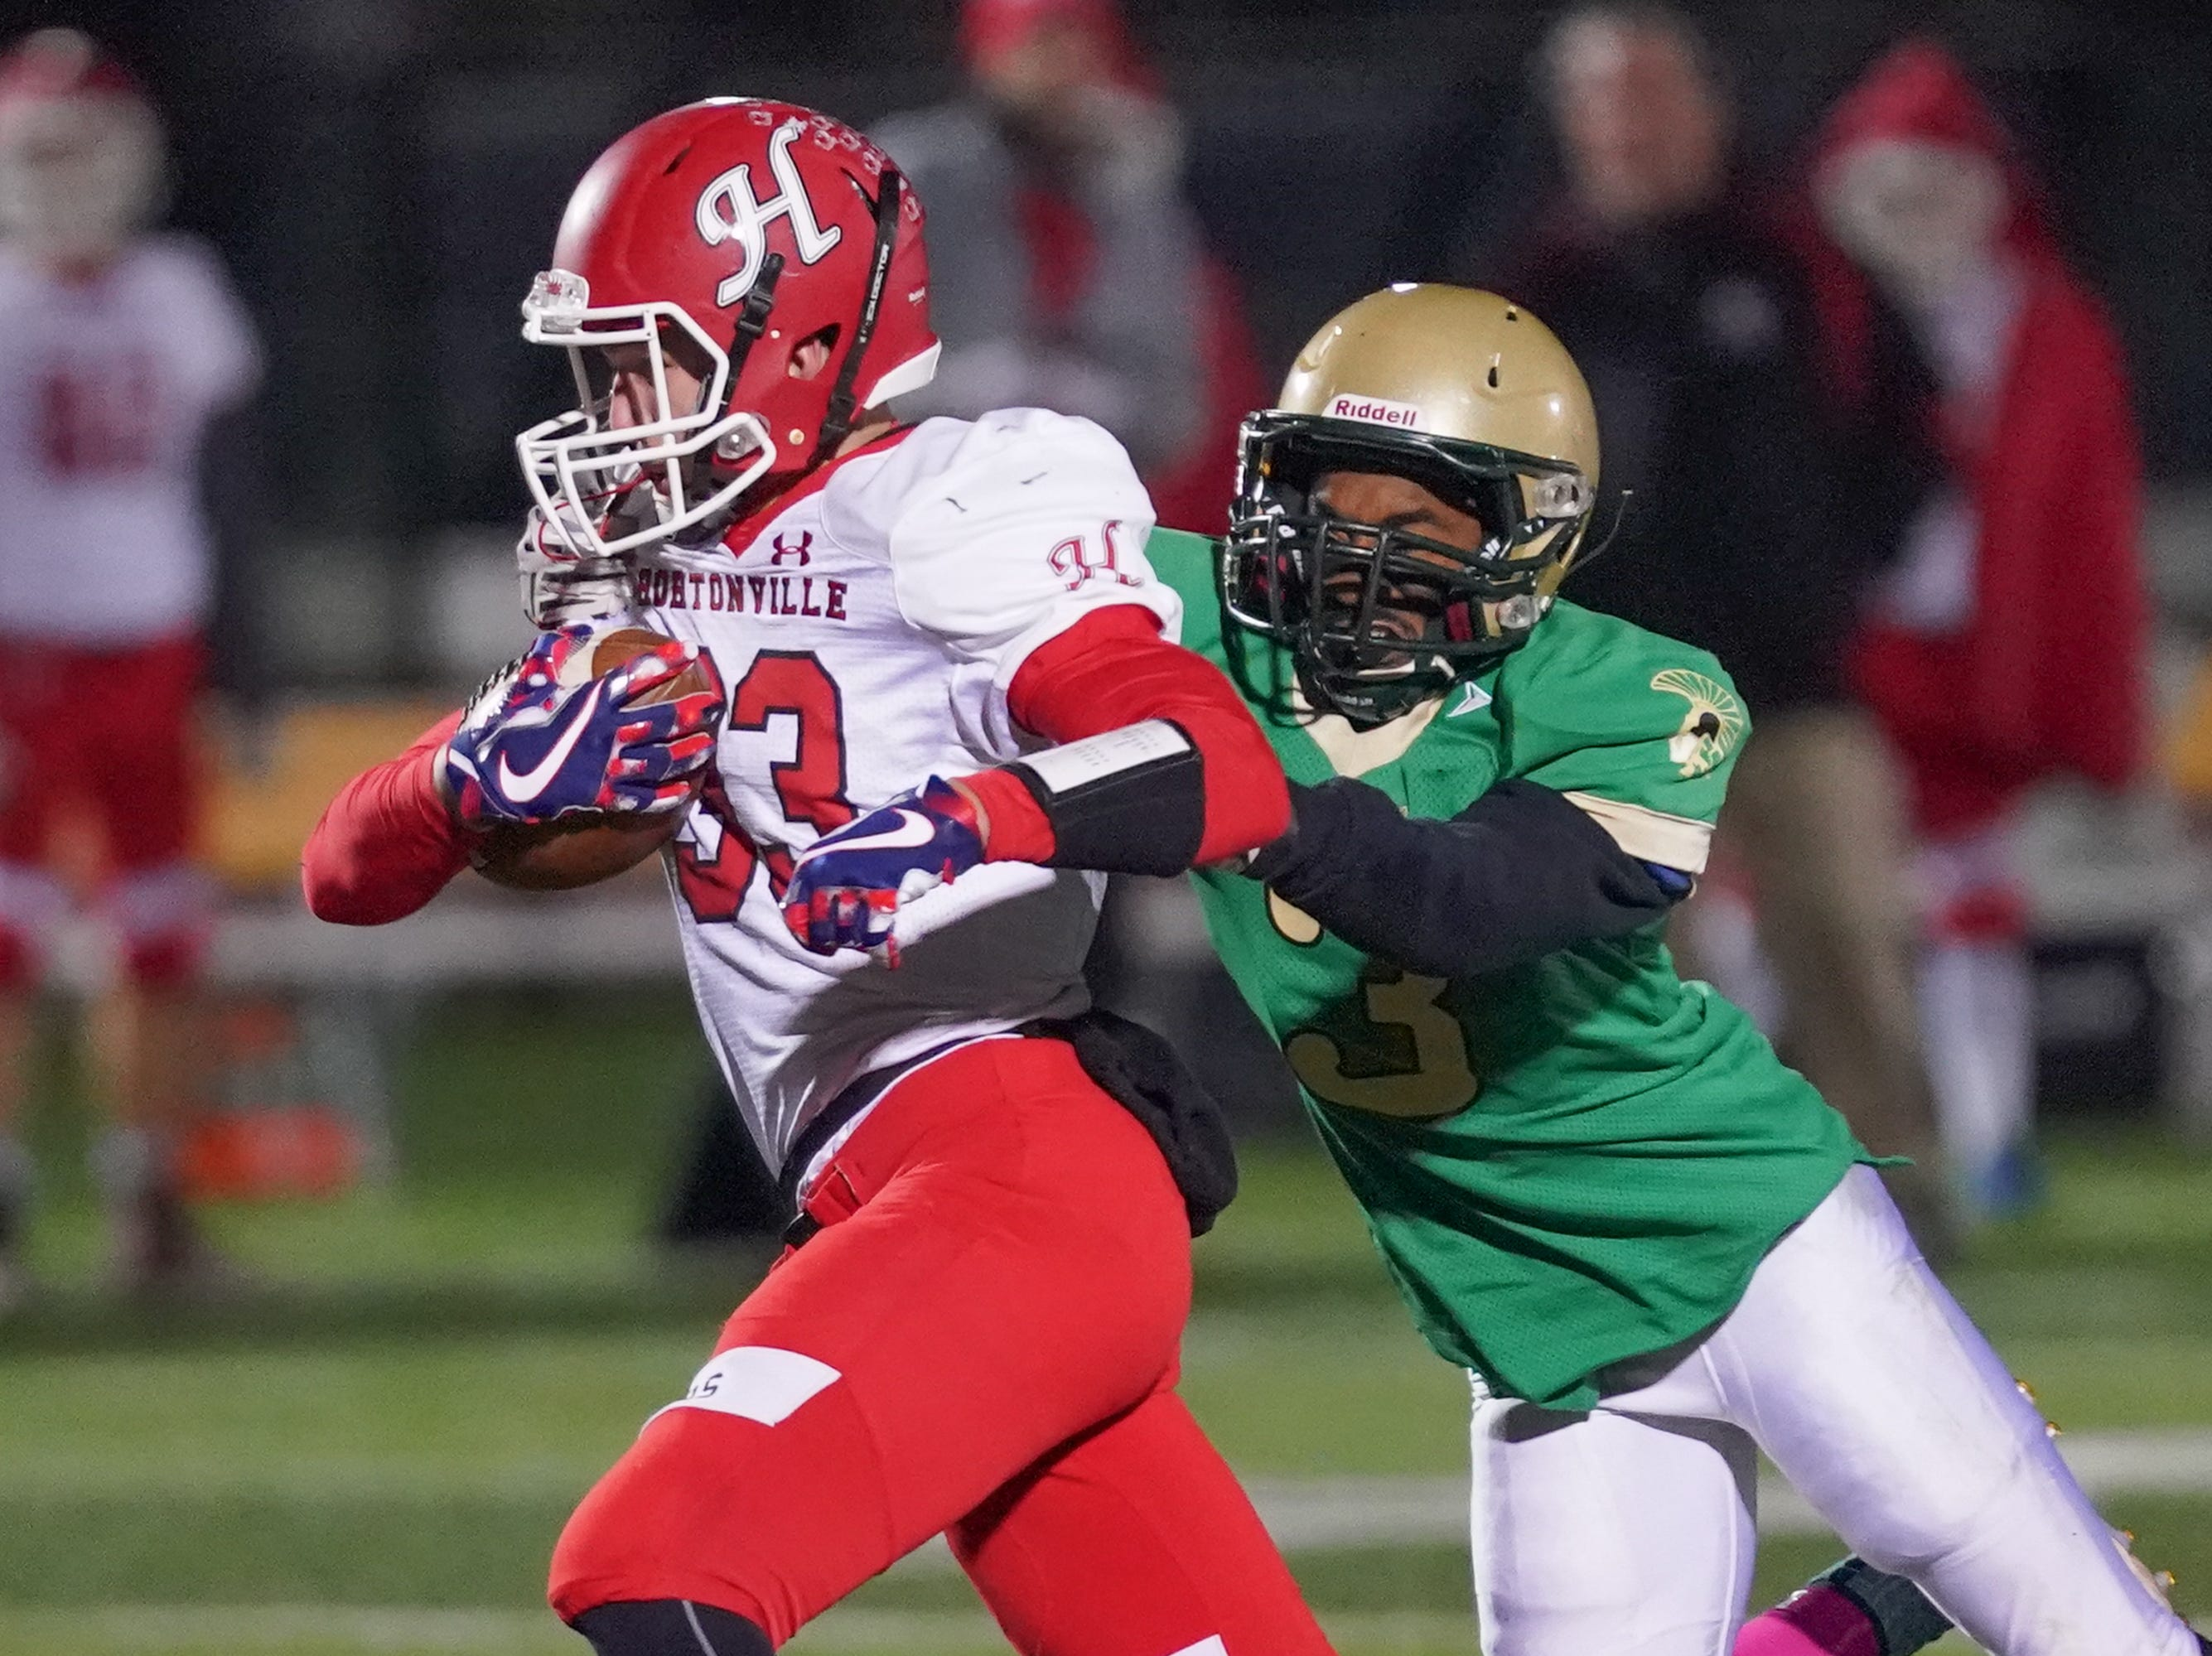 Dylan Schmidt (33) of Hortonville tries to outrun the grasp of Travon Lee (3) of Oshkosh North. The Oshkosh North Spartans hosted the Hortonville Polar Bears in an FVA-South conference matchup Friday evening, October 12, 2018 at J. J. Keller Field at Titan Stadium.